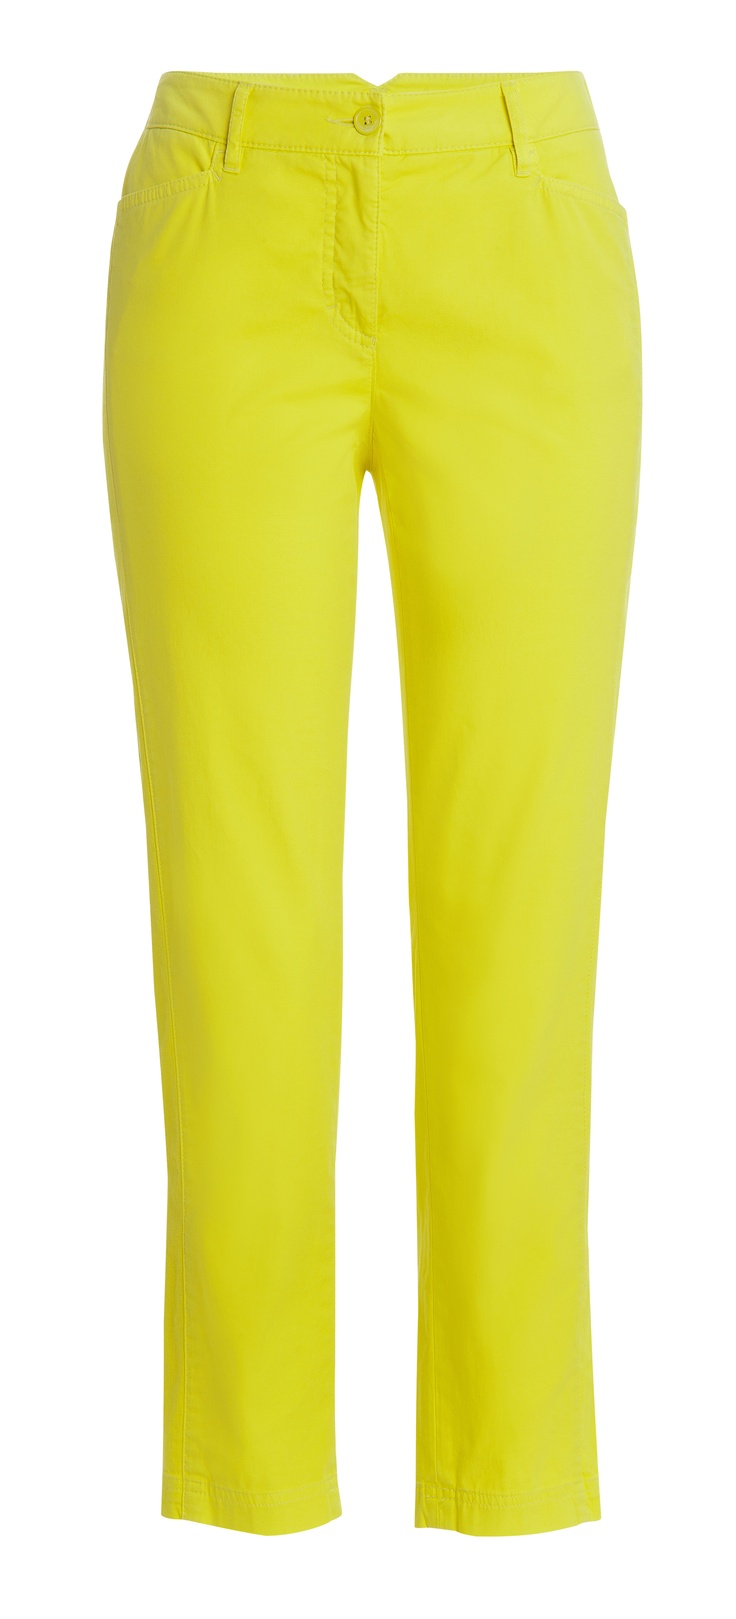 citrus cotton/elastane pant